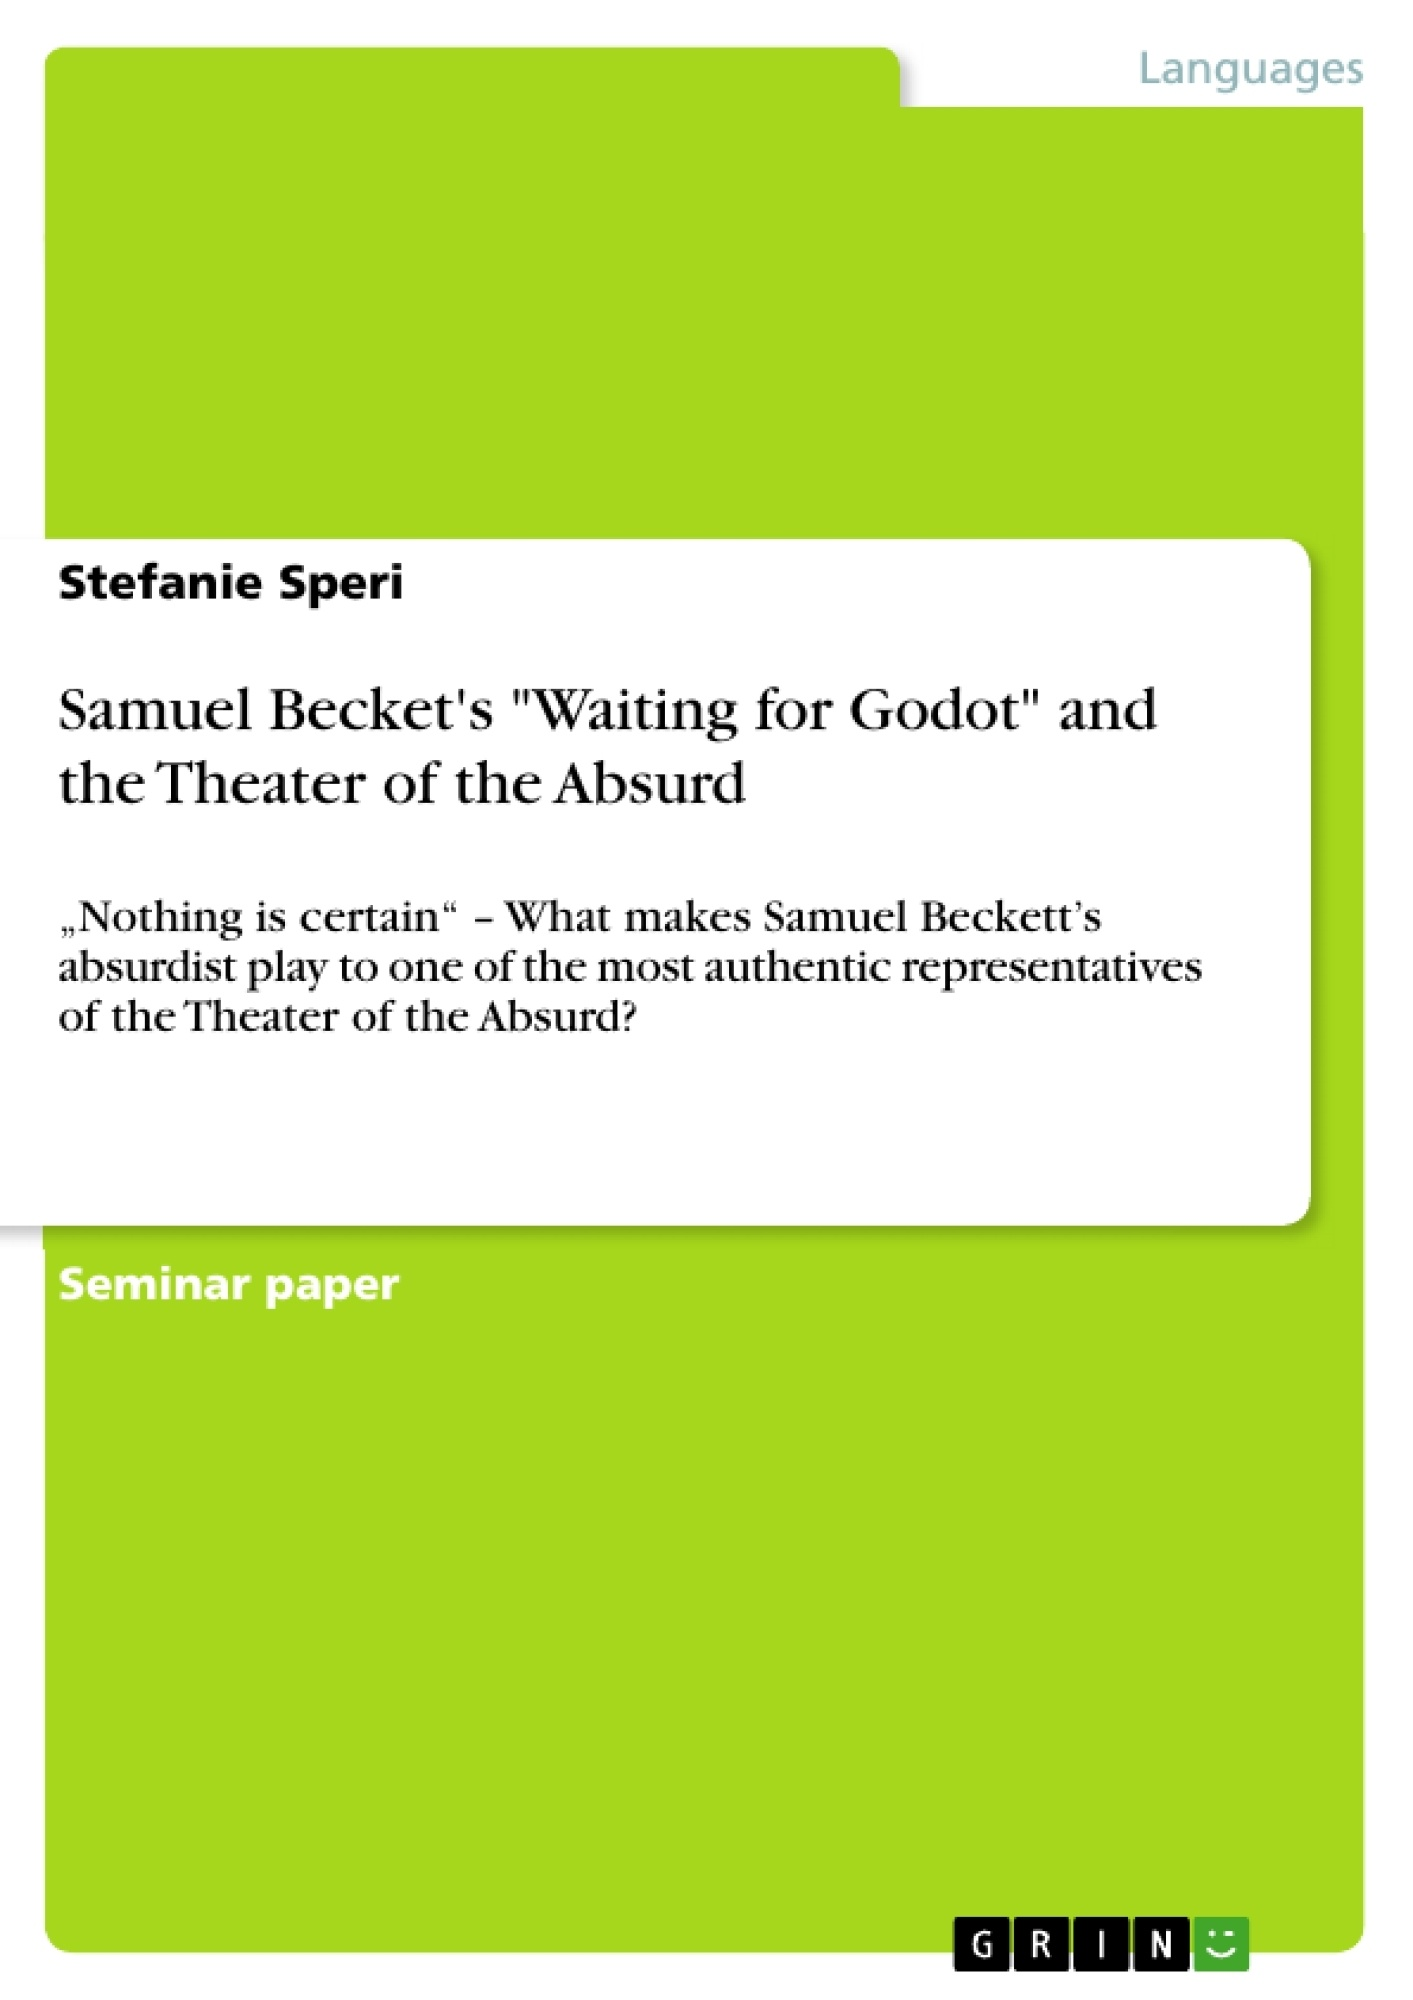 cultural essay on waiting for godot